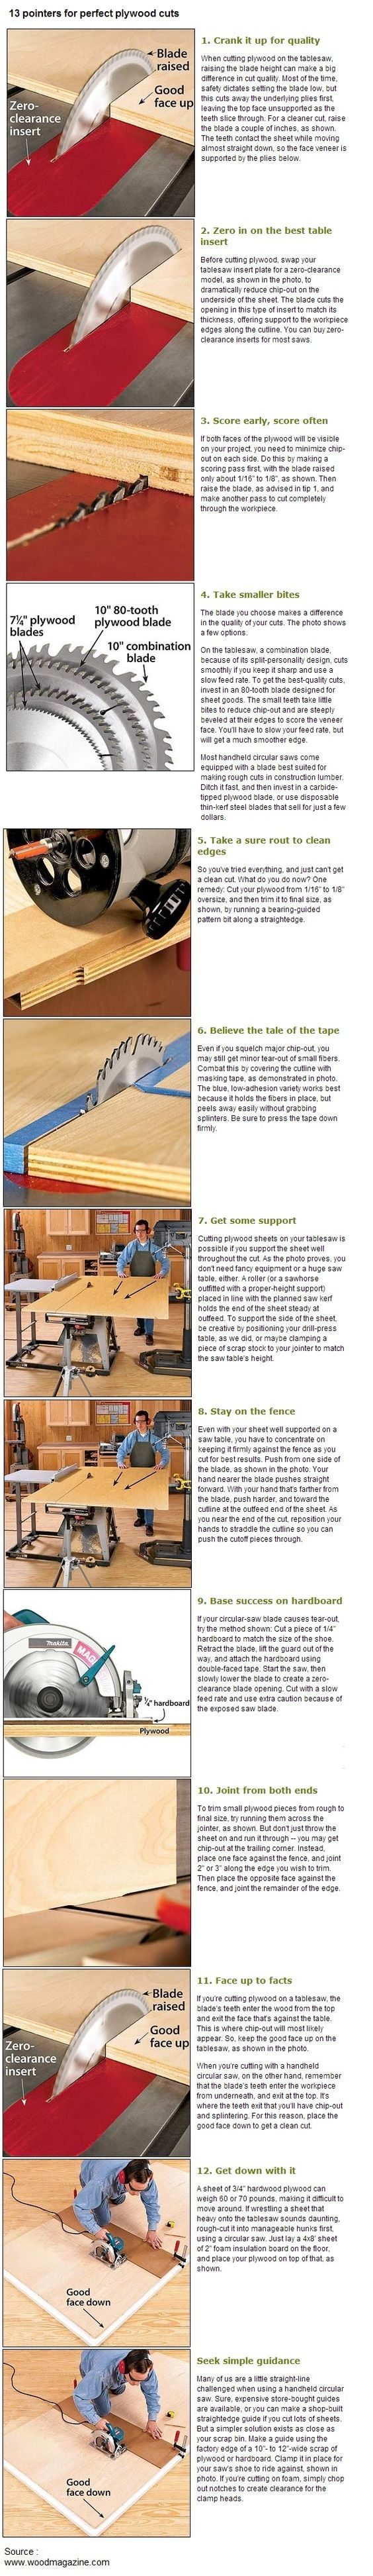 13 pointers for perfect plywood cuts: